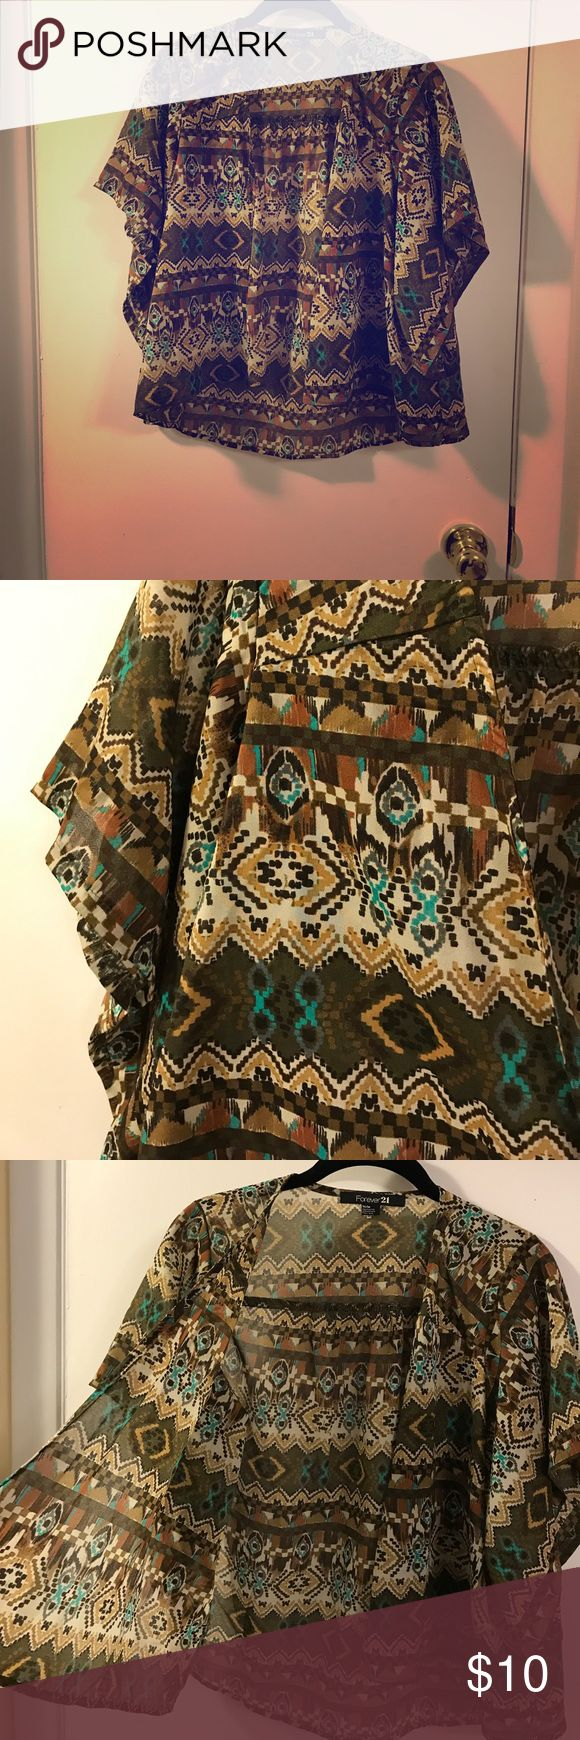 A top. Aztec print, light top. Kimono style. To be worn over a cami. Forever 21 Tops Blouses